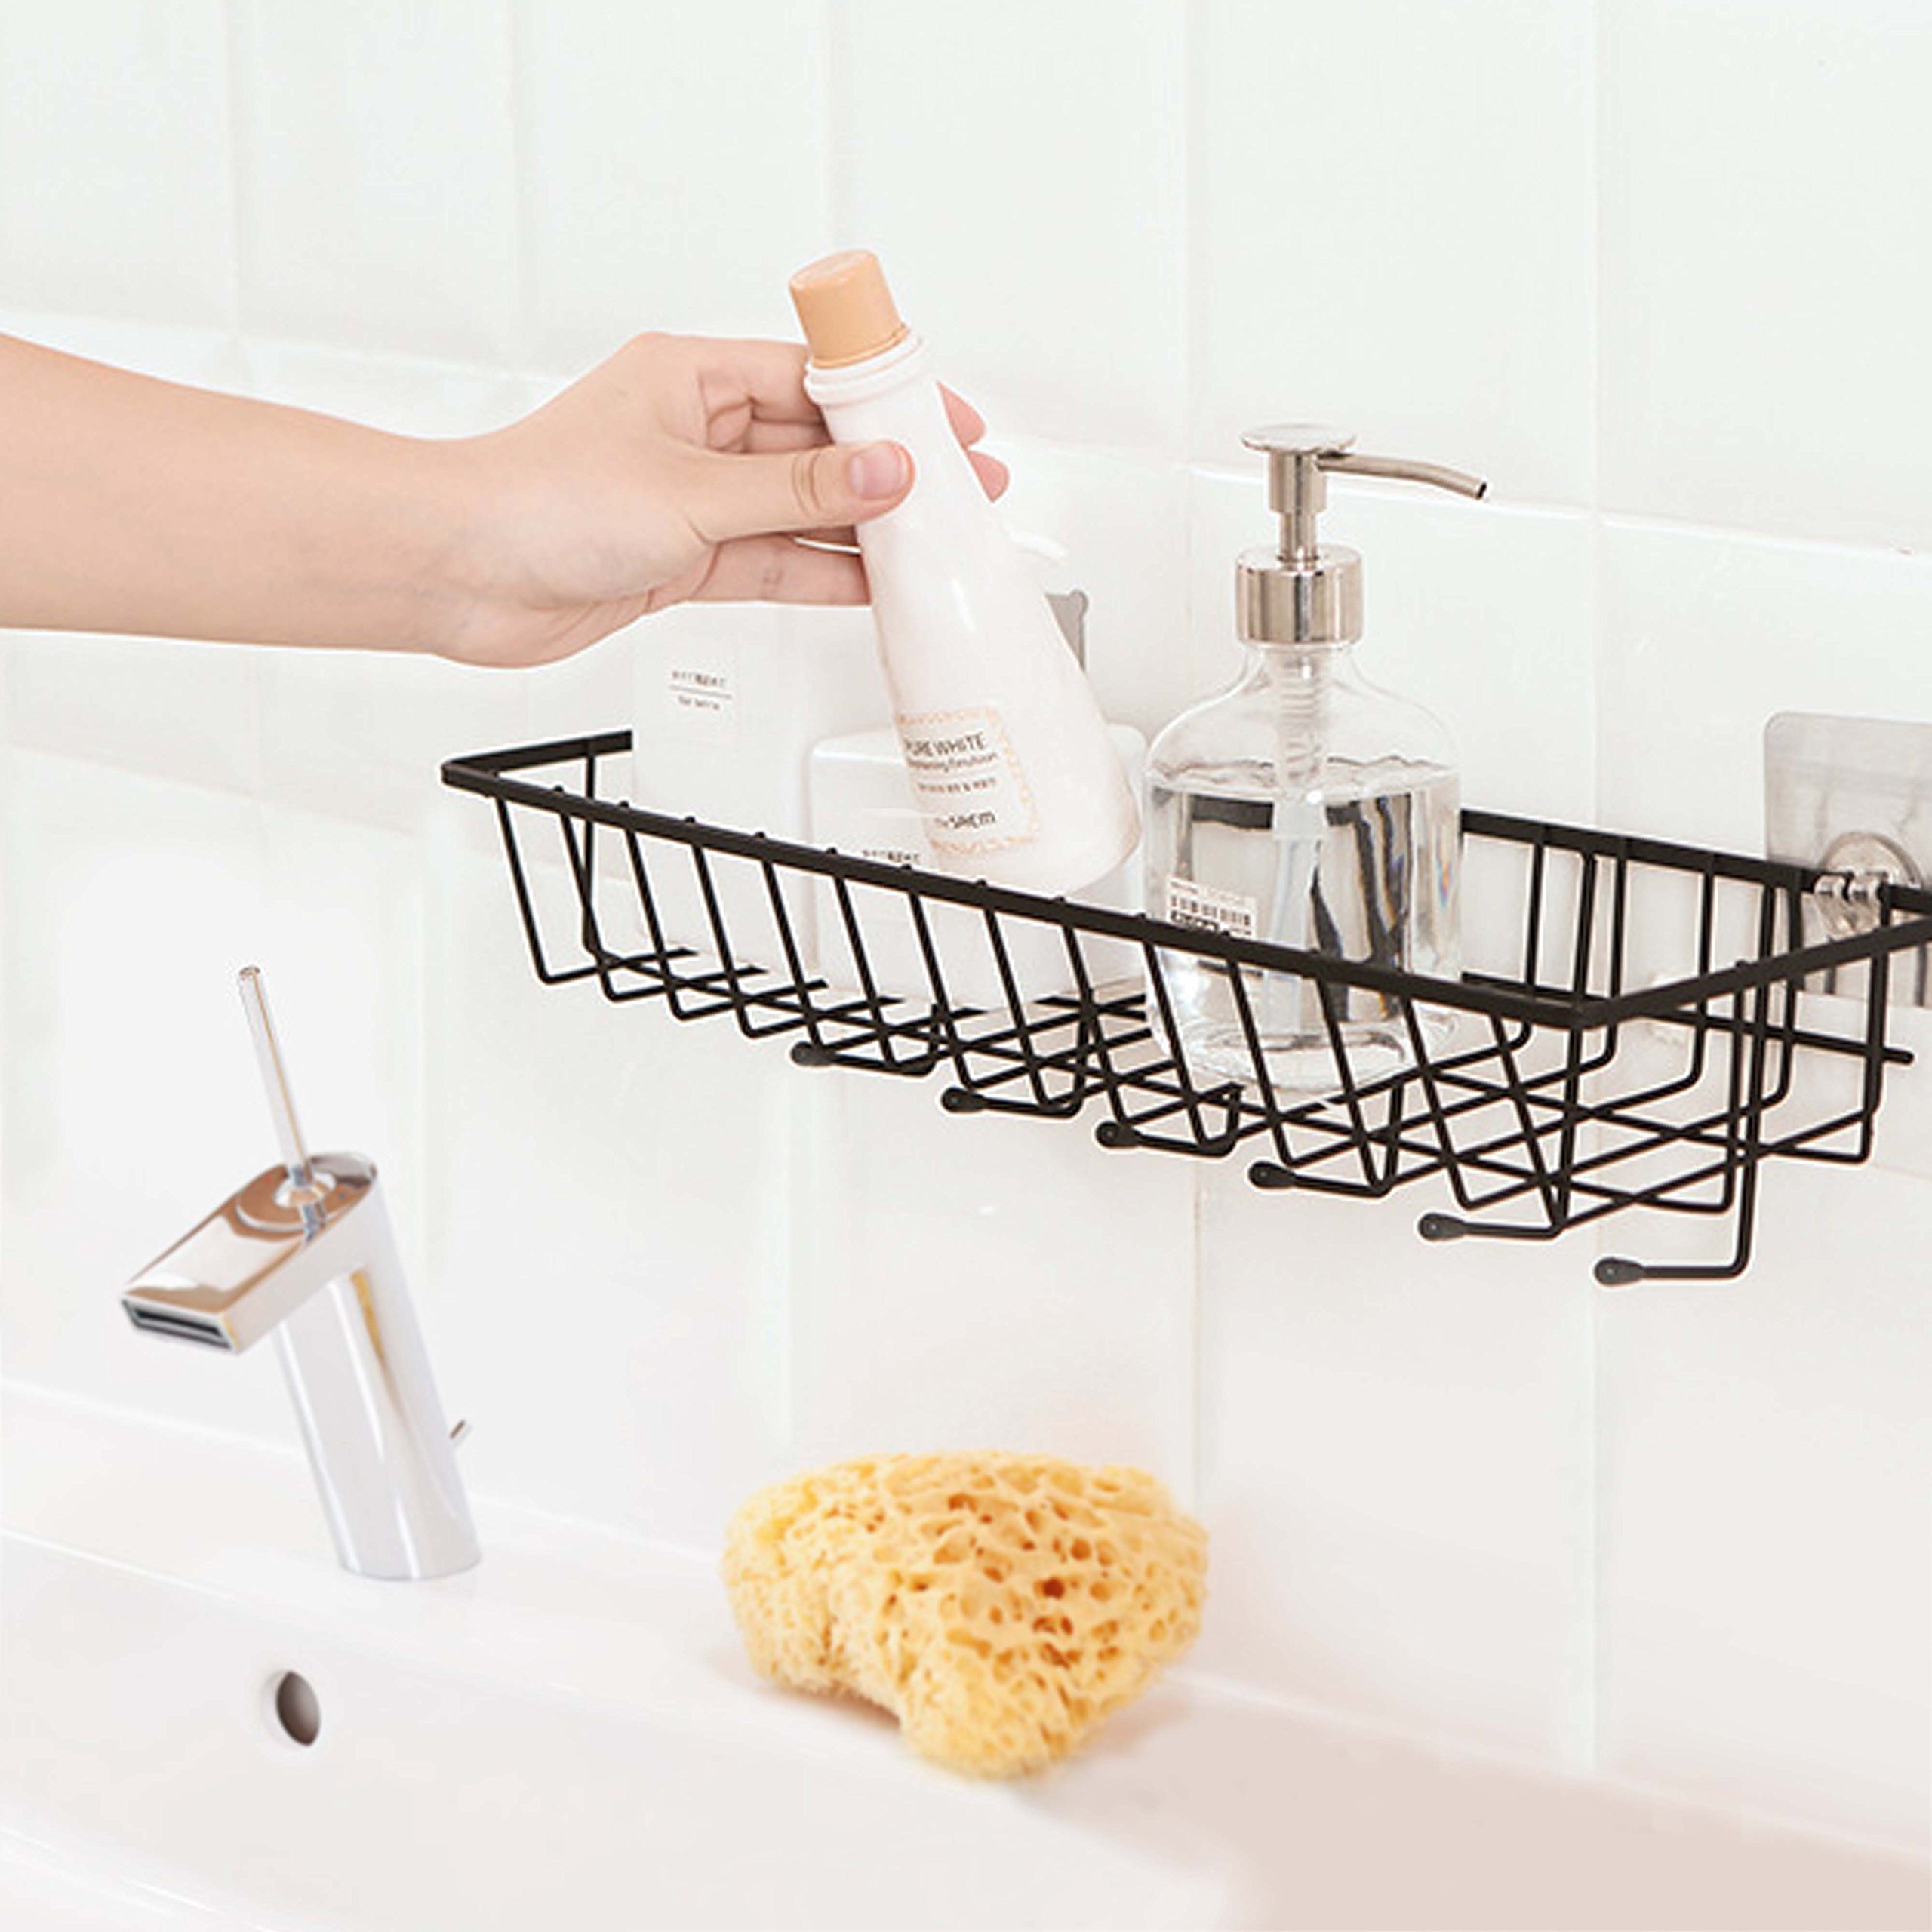 Easy Eco Life Bathroom shelf wall organizer with 6 Hooks Adhesive Pads Installation No Wall Damage -Large Size Iron Wire Painting Black